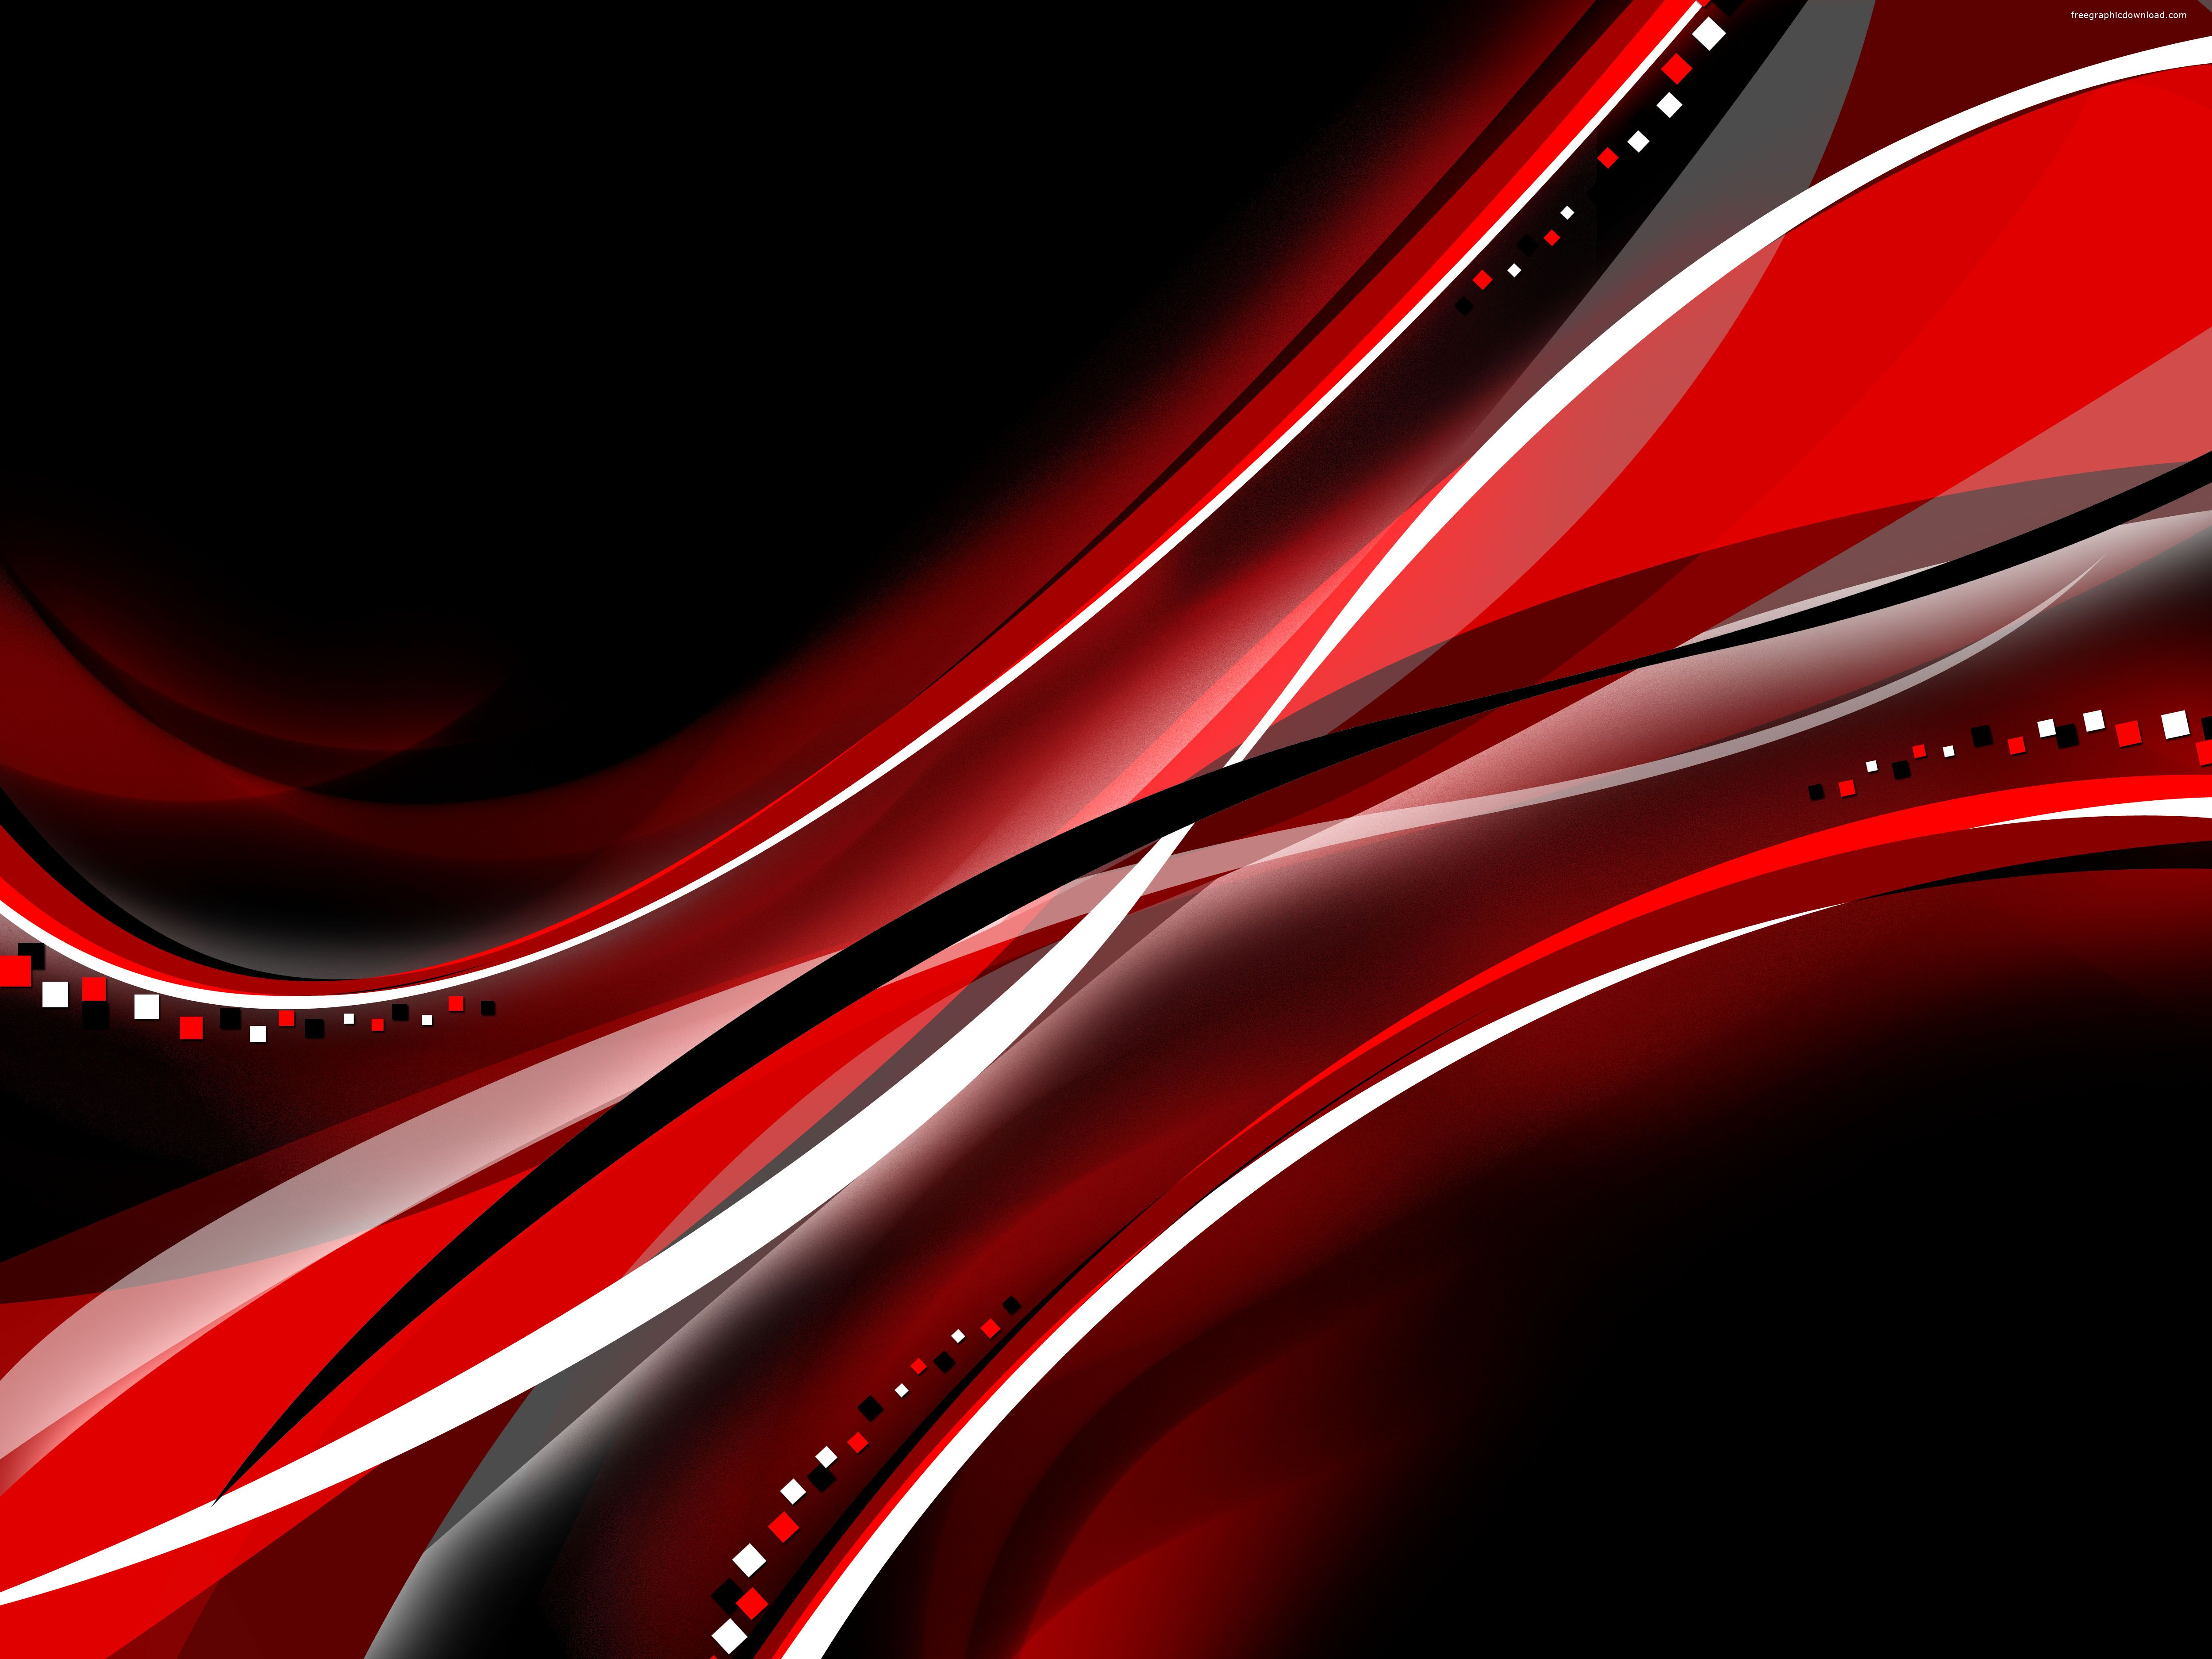 Red wallpaper abstract wallpapersafari - Black red abstract wallpaper ...